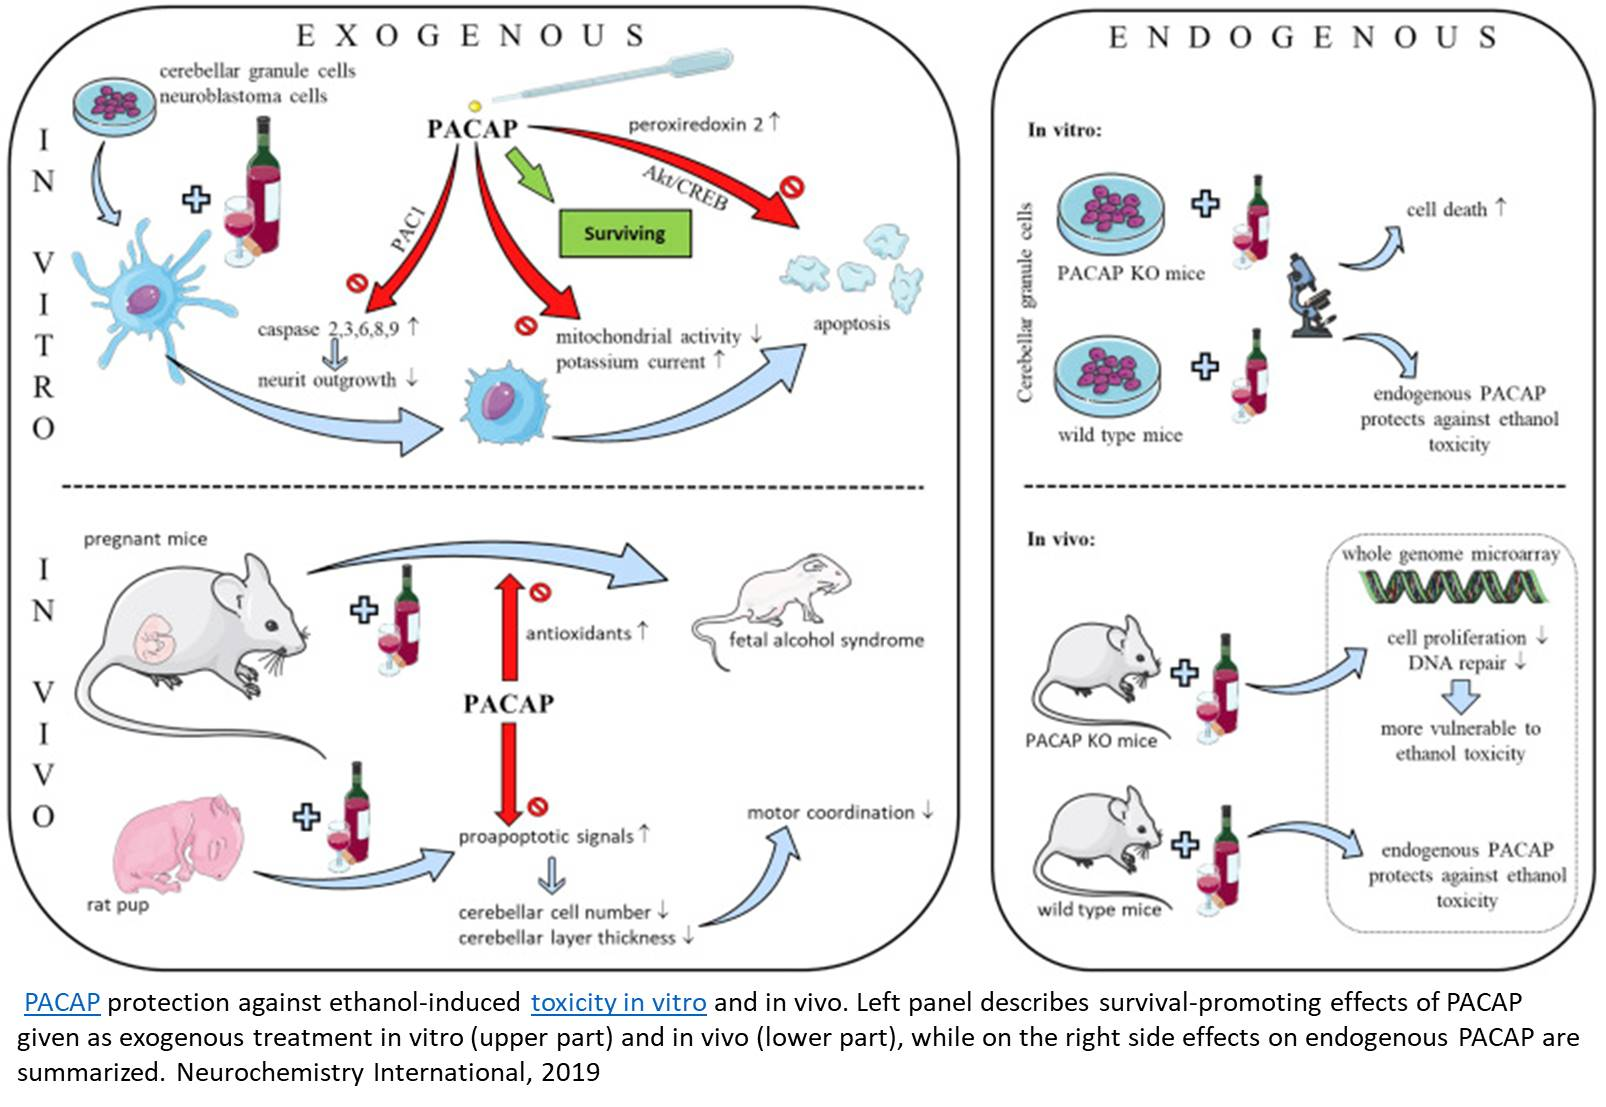 Pituitary peptide modulates alcohol dependence and anxiety-like behavior